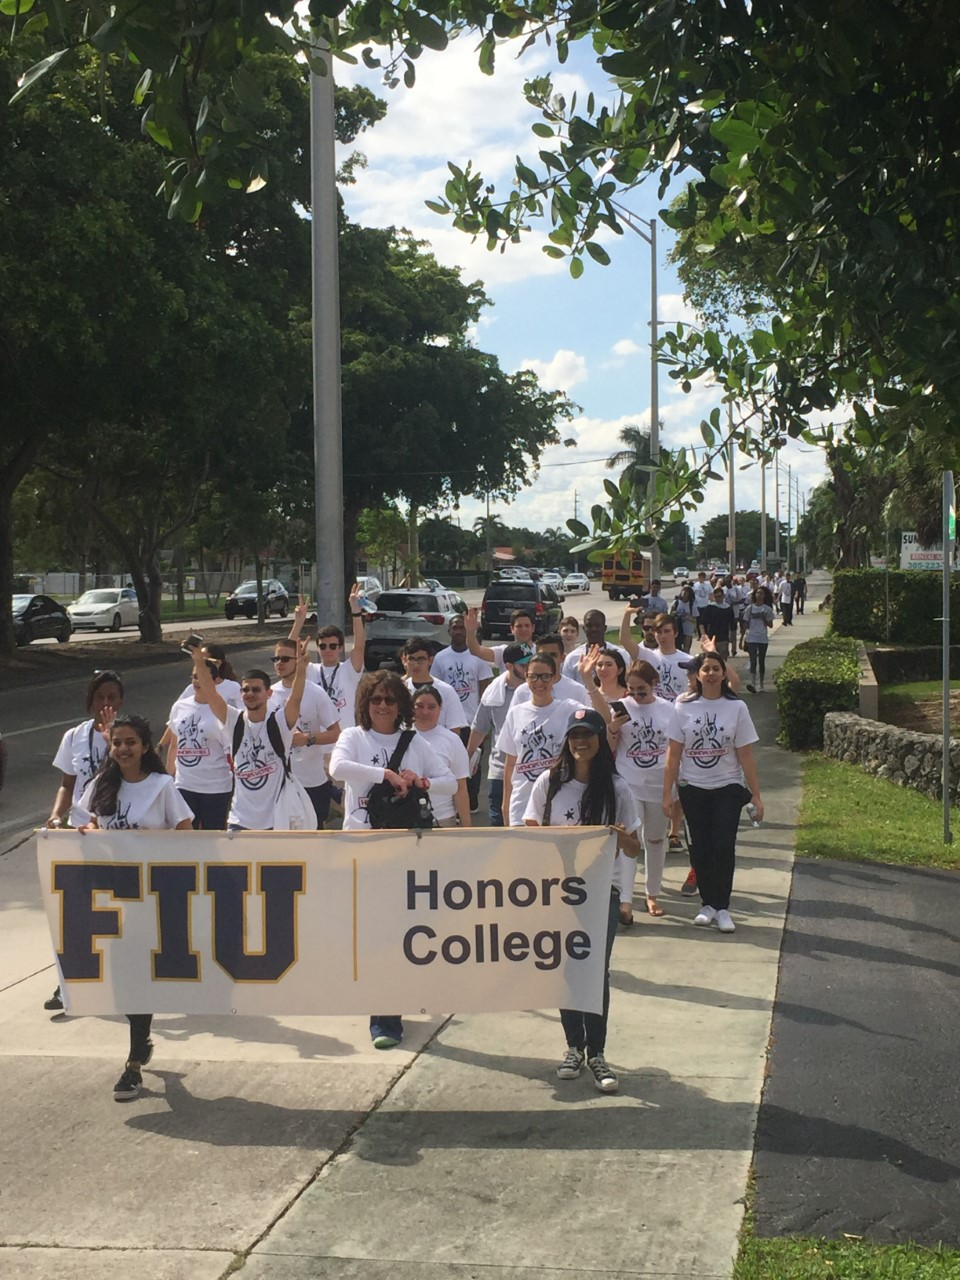 Honors college fiu